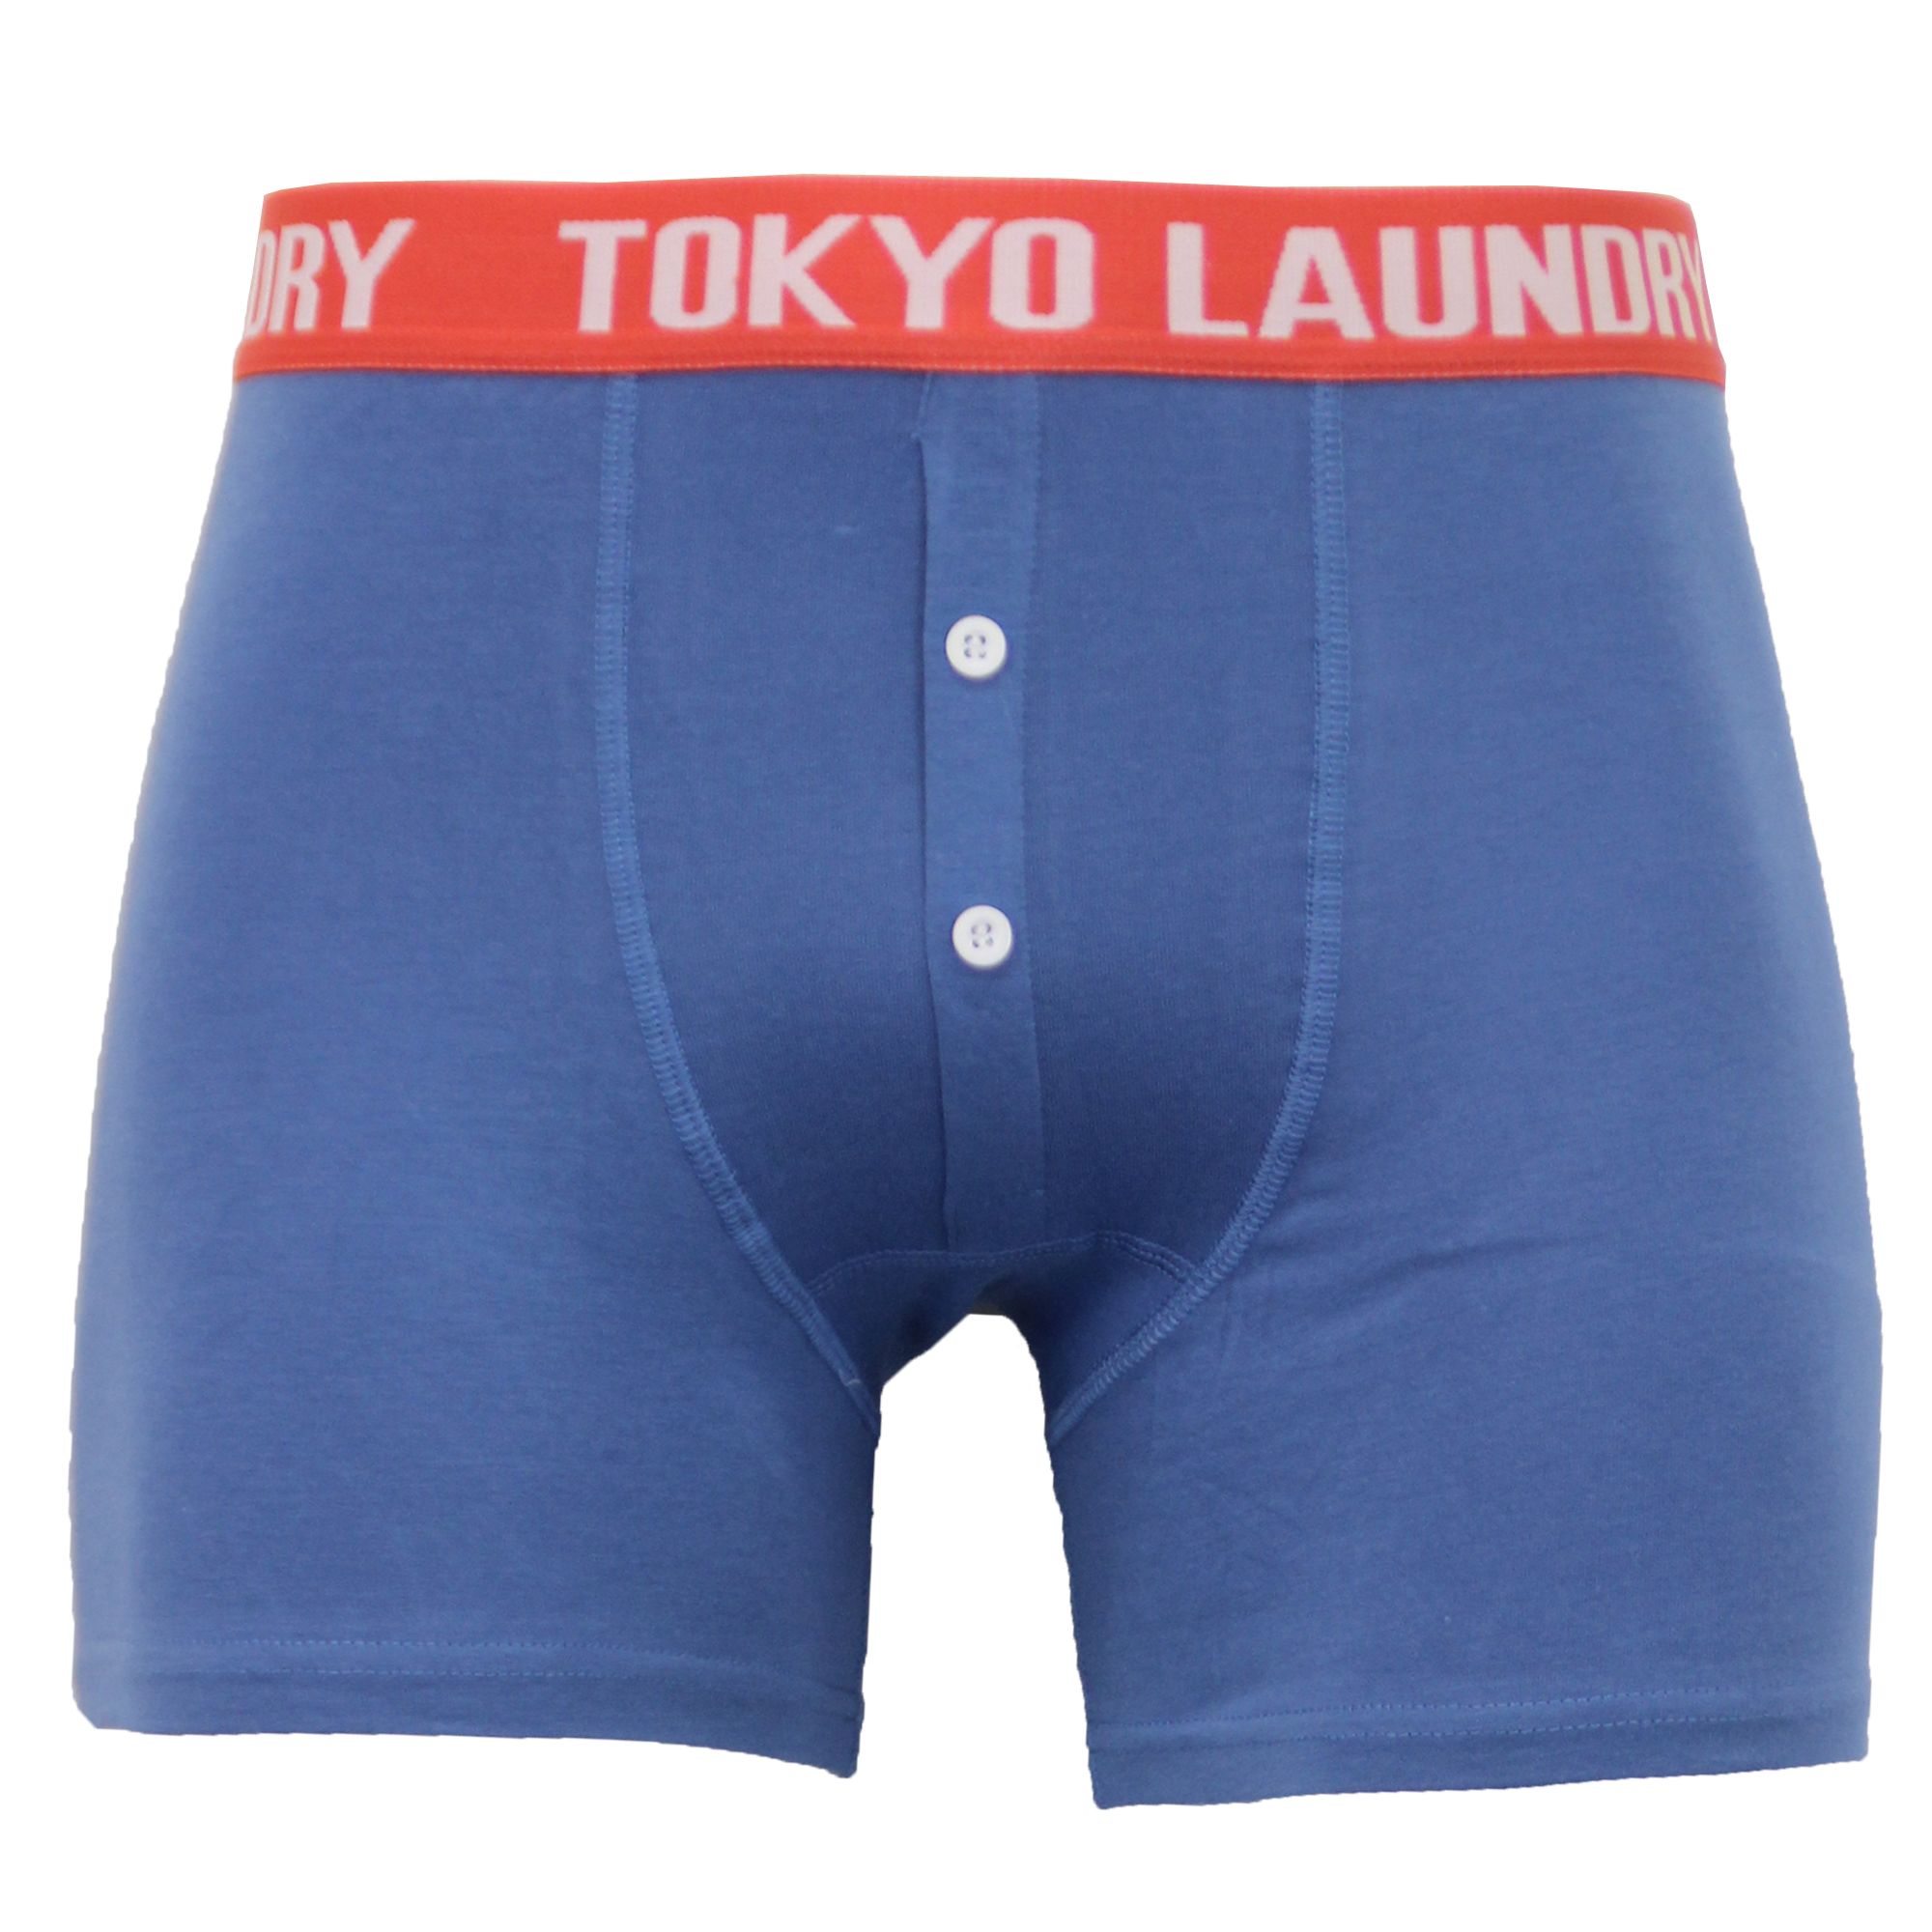 Mens Boxers Shorts Underwear By Tokyo Laundry 2 Pack